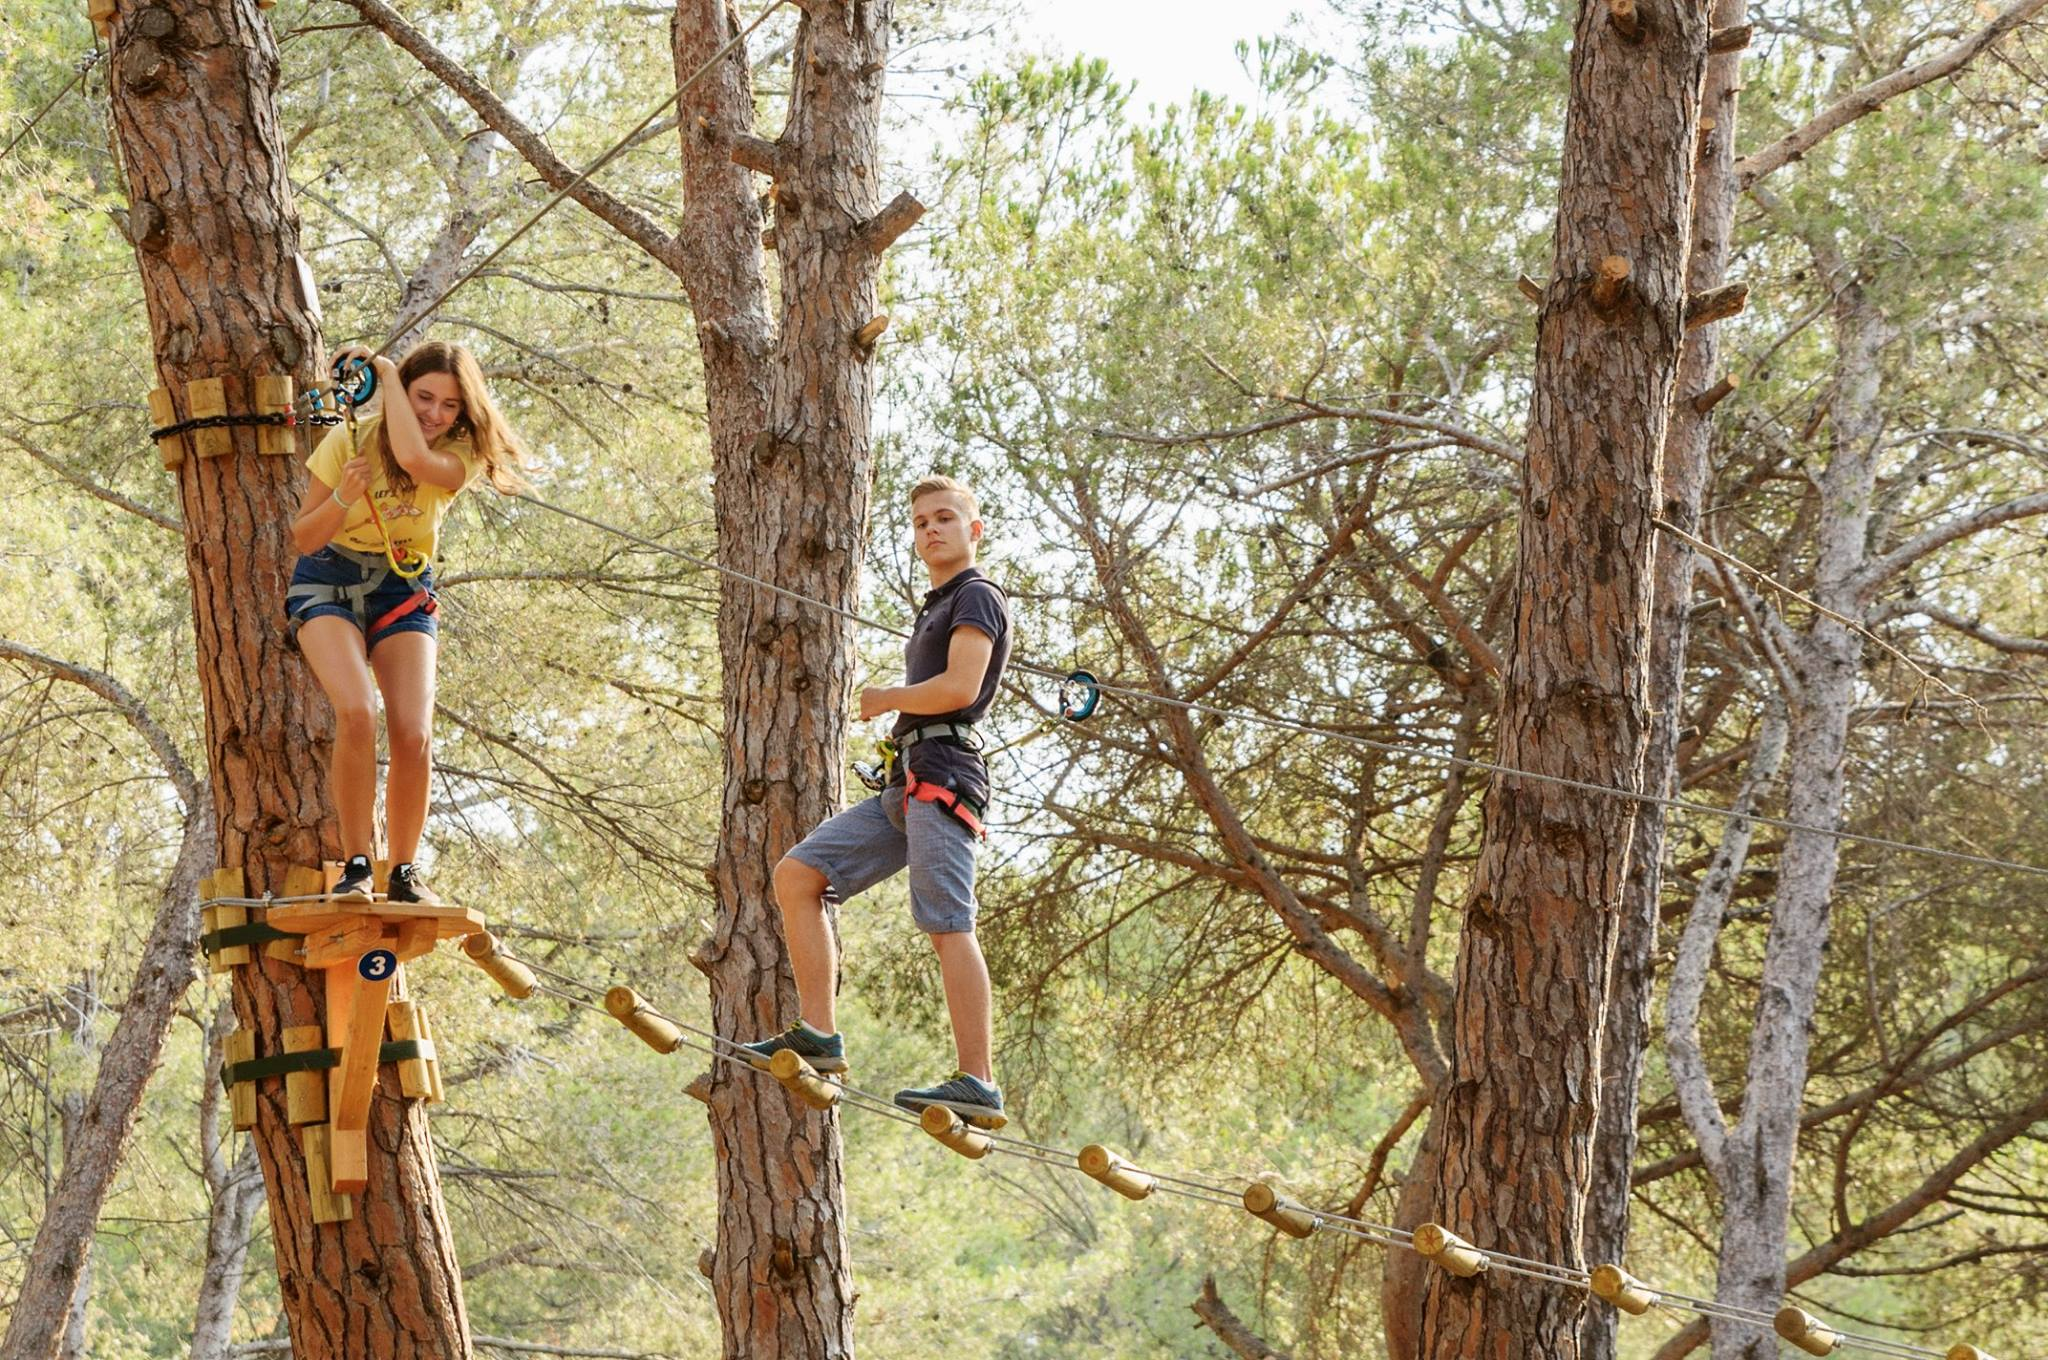 High wire package Lloret de mar - Girona - troll-aventura.jpg